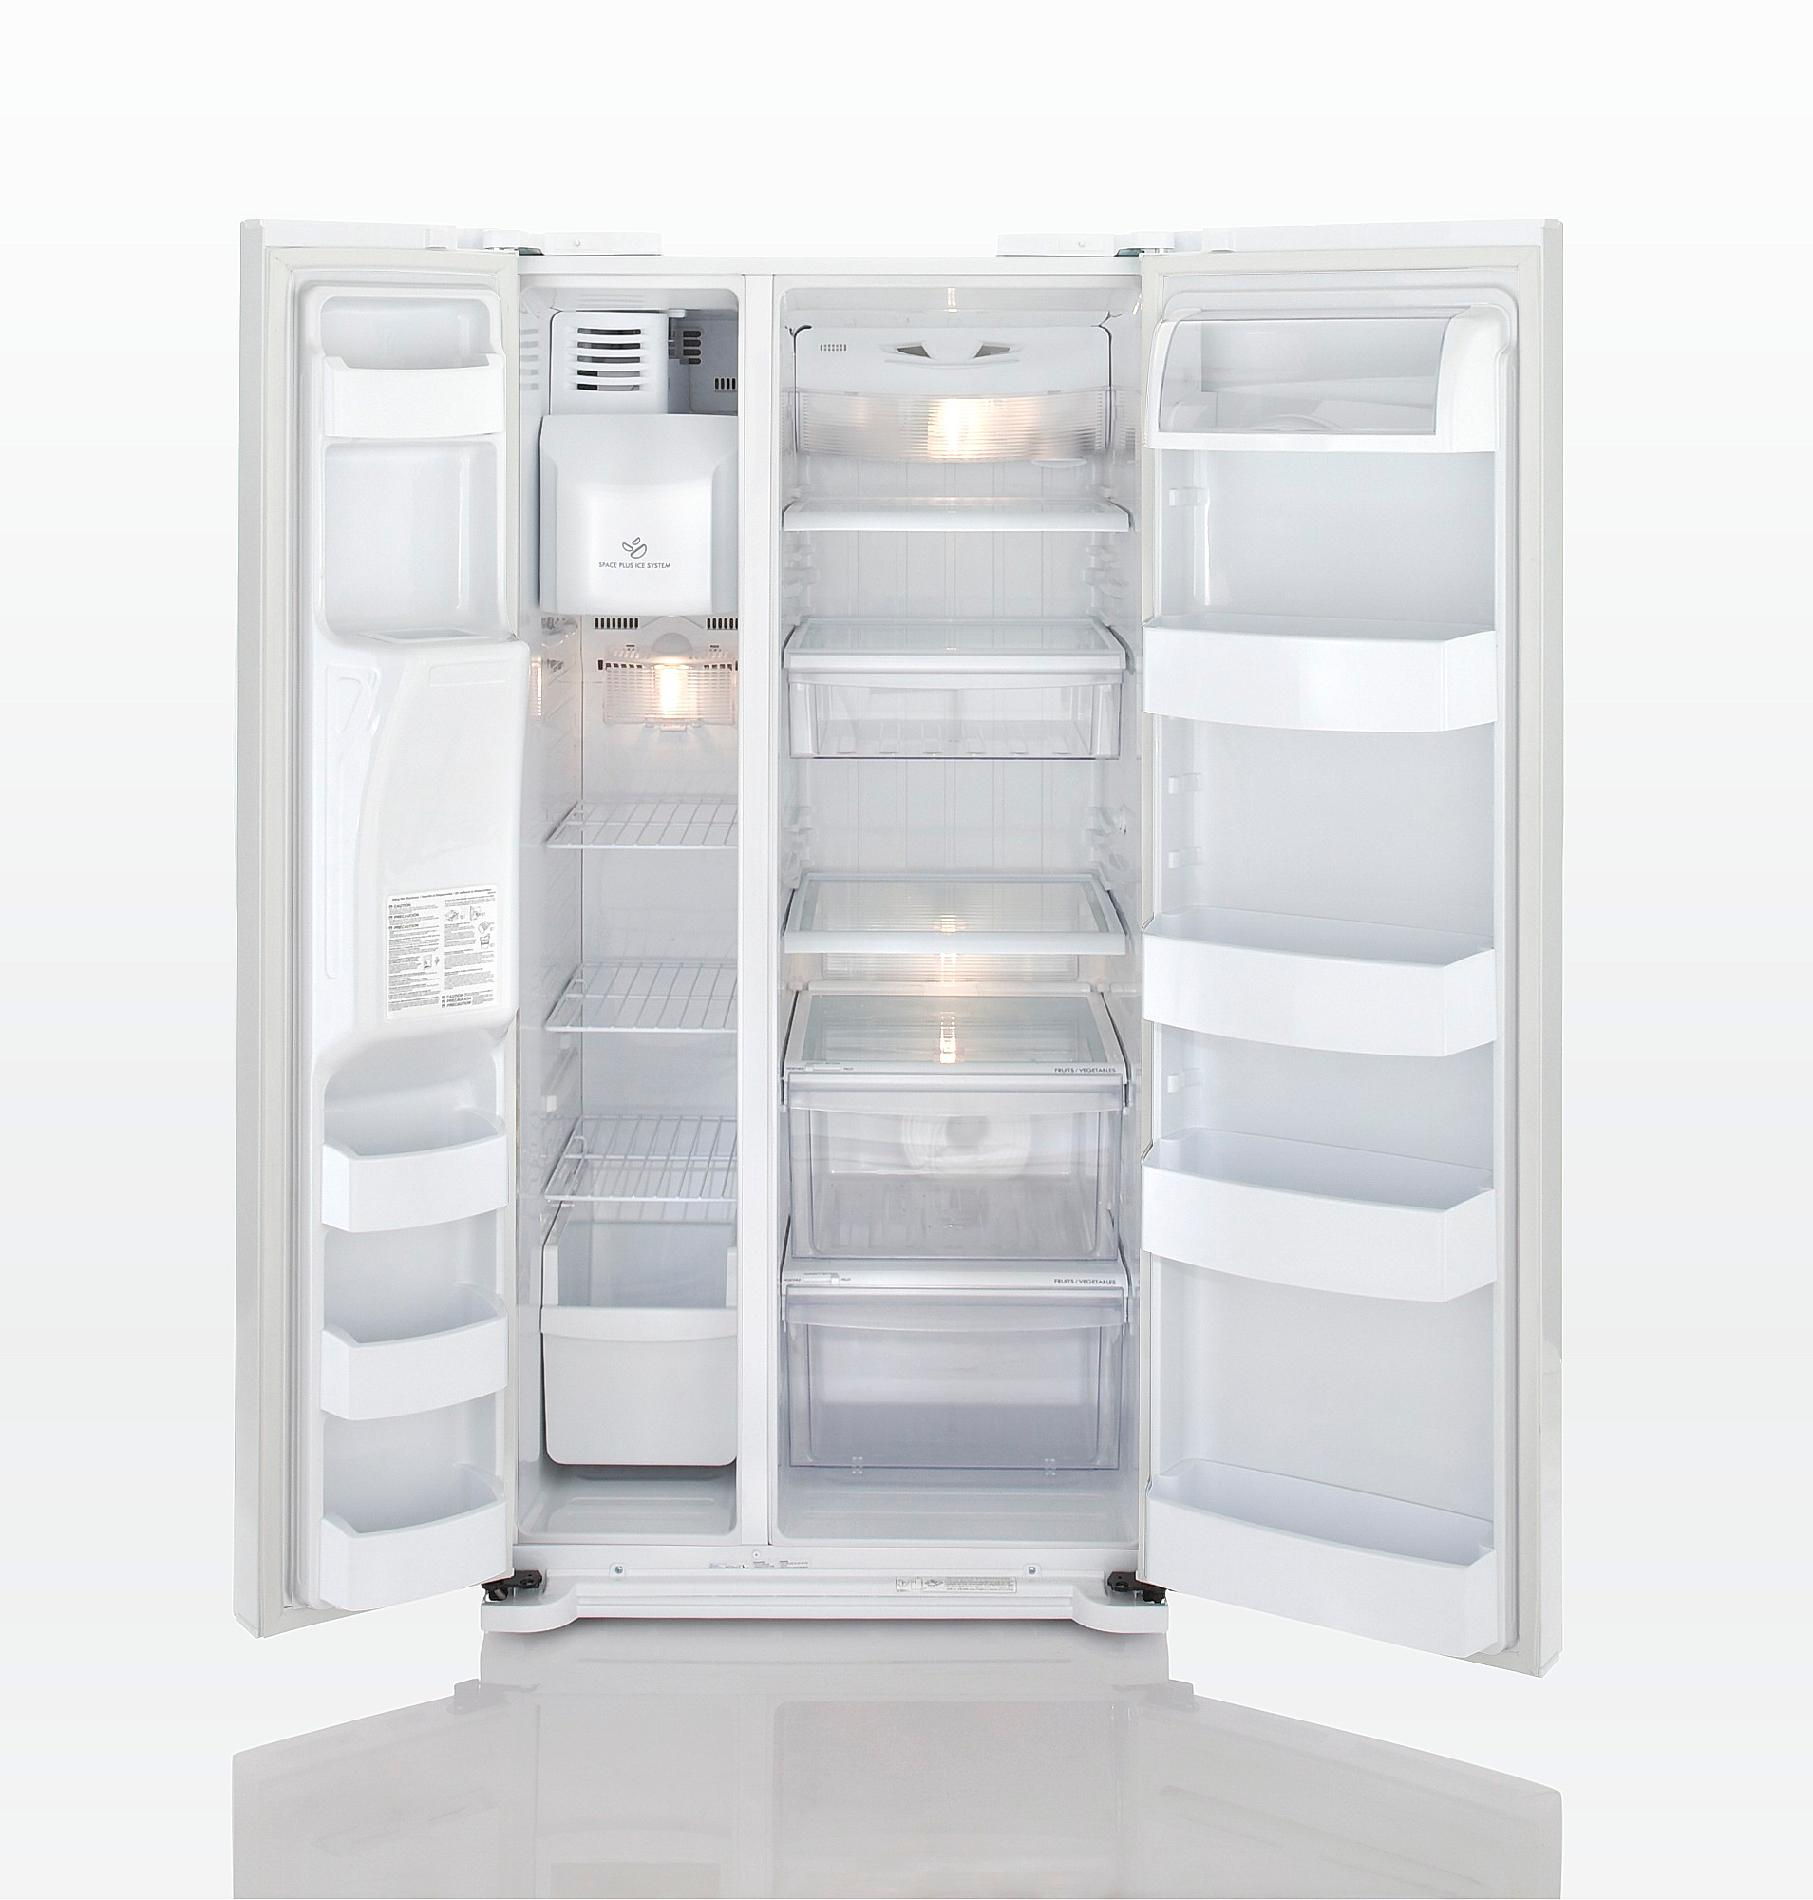 Kenmore 22.9 cu. ft. Side-By-Side Refrigerator